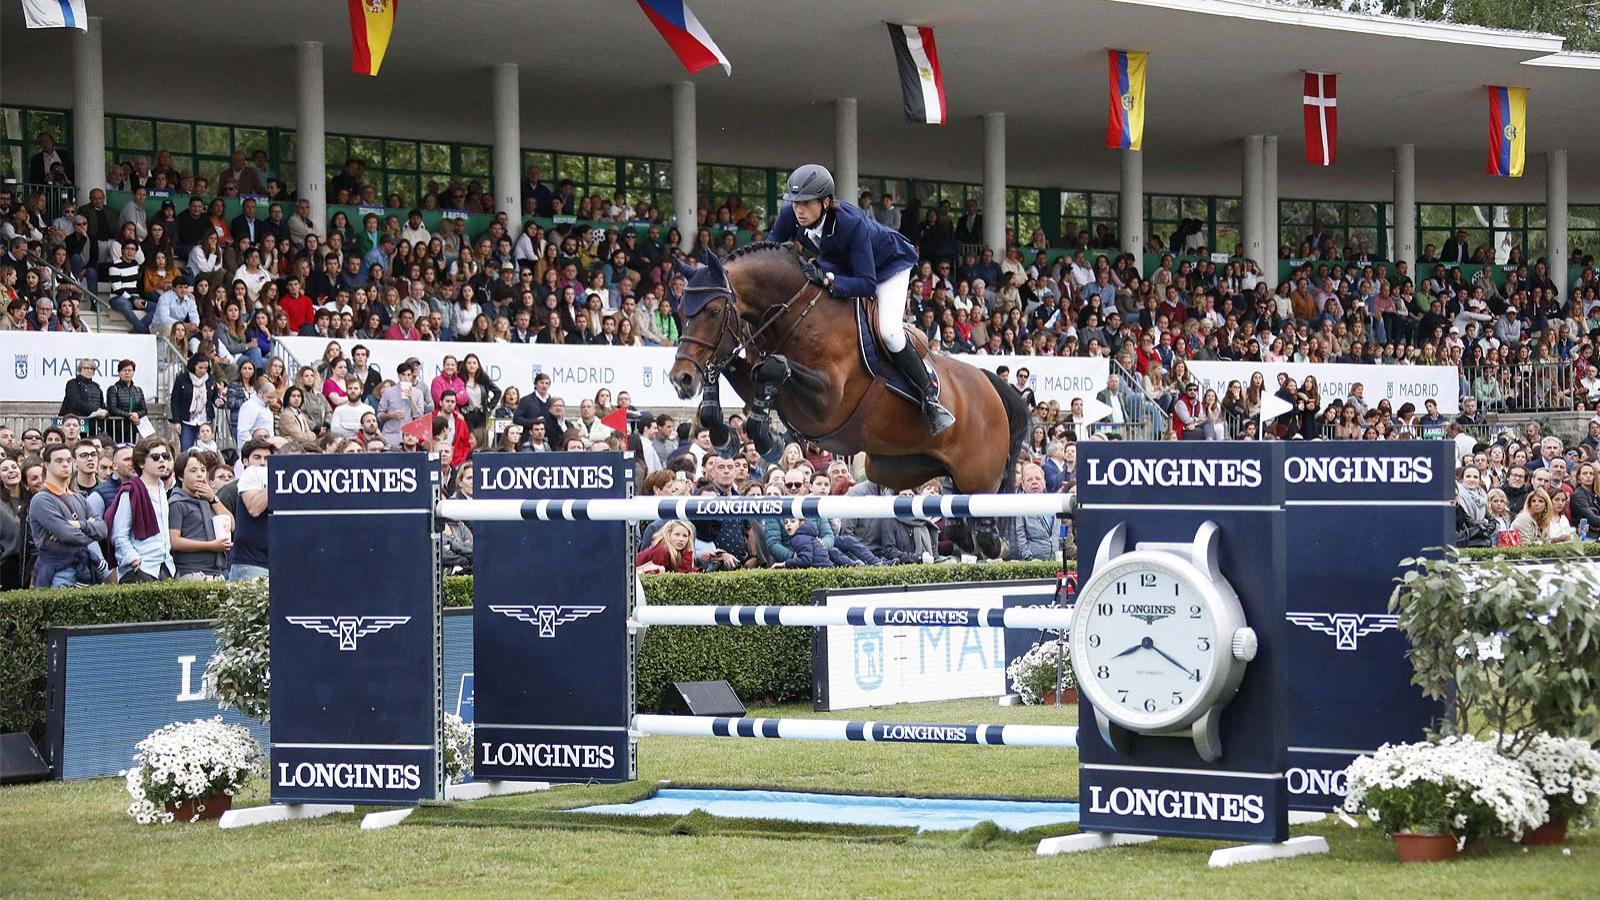 Longines Global Champions Tour of Madrid; Jumping; 2019